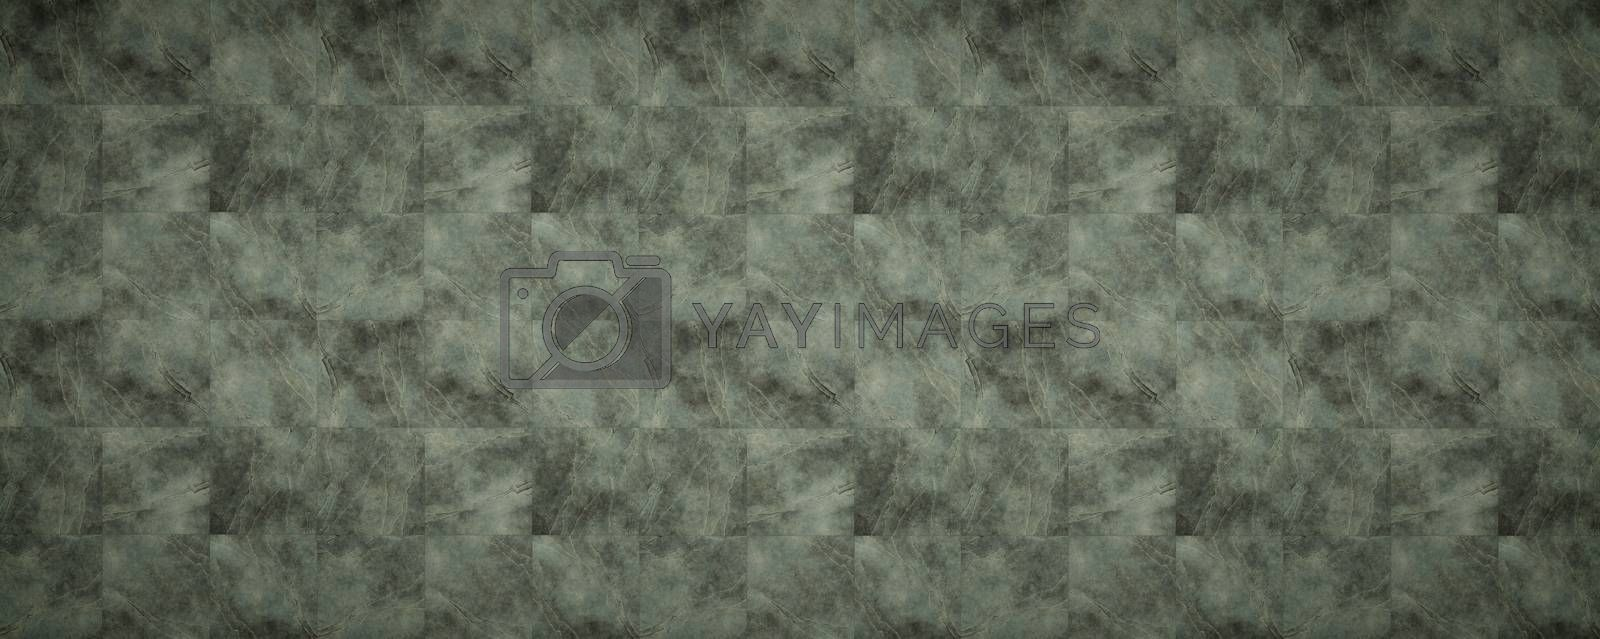 Background image showing a surface with the texture of marble on ceramic tiles in green tones